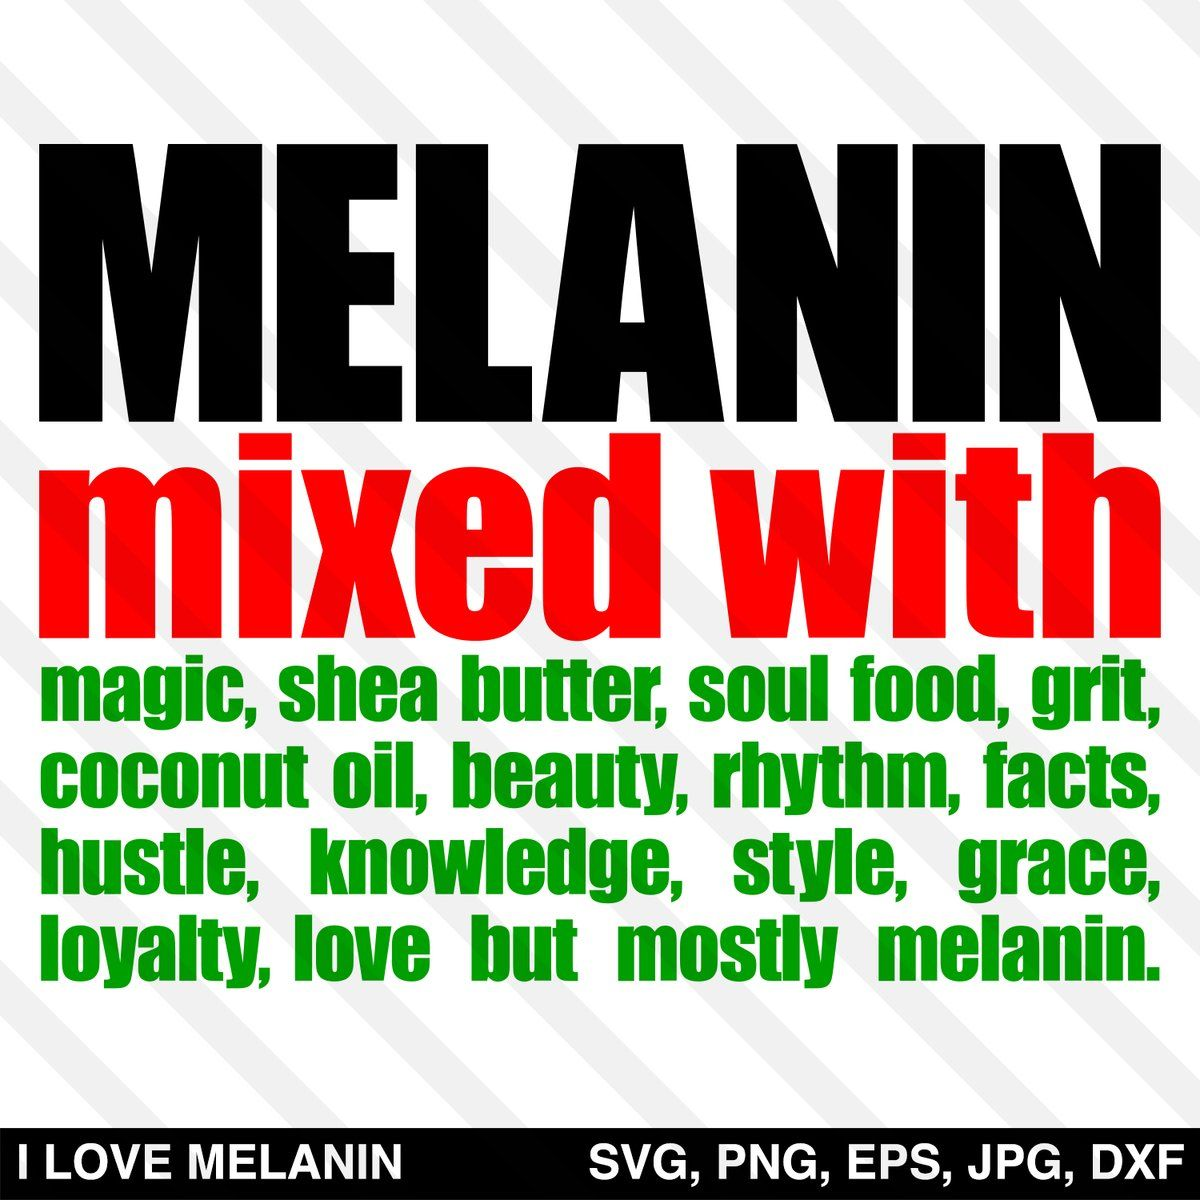 Download Melanin Mixed With Melanin SVG in 2020 | How to make ...